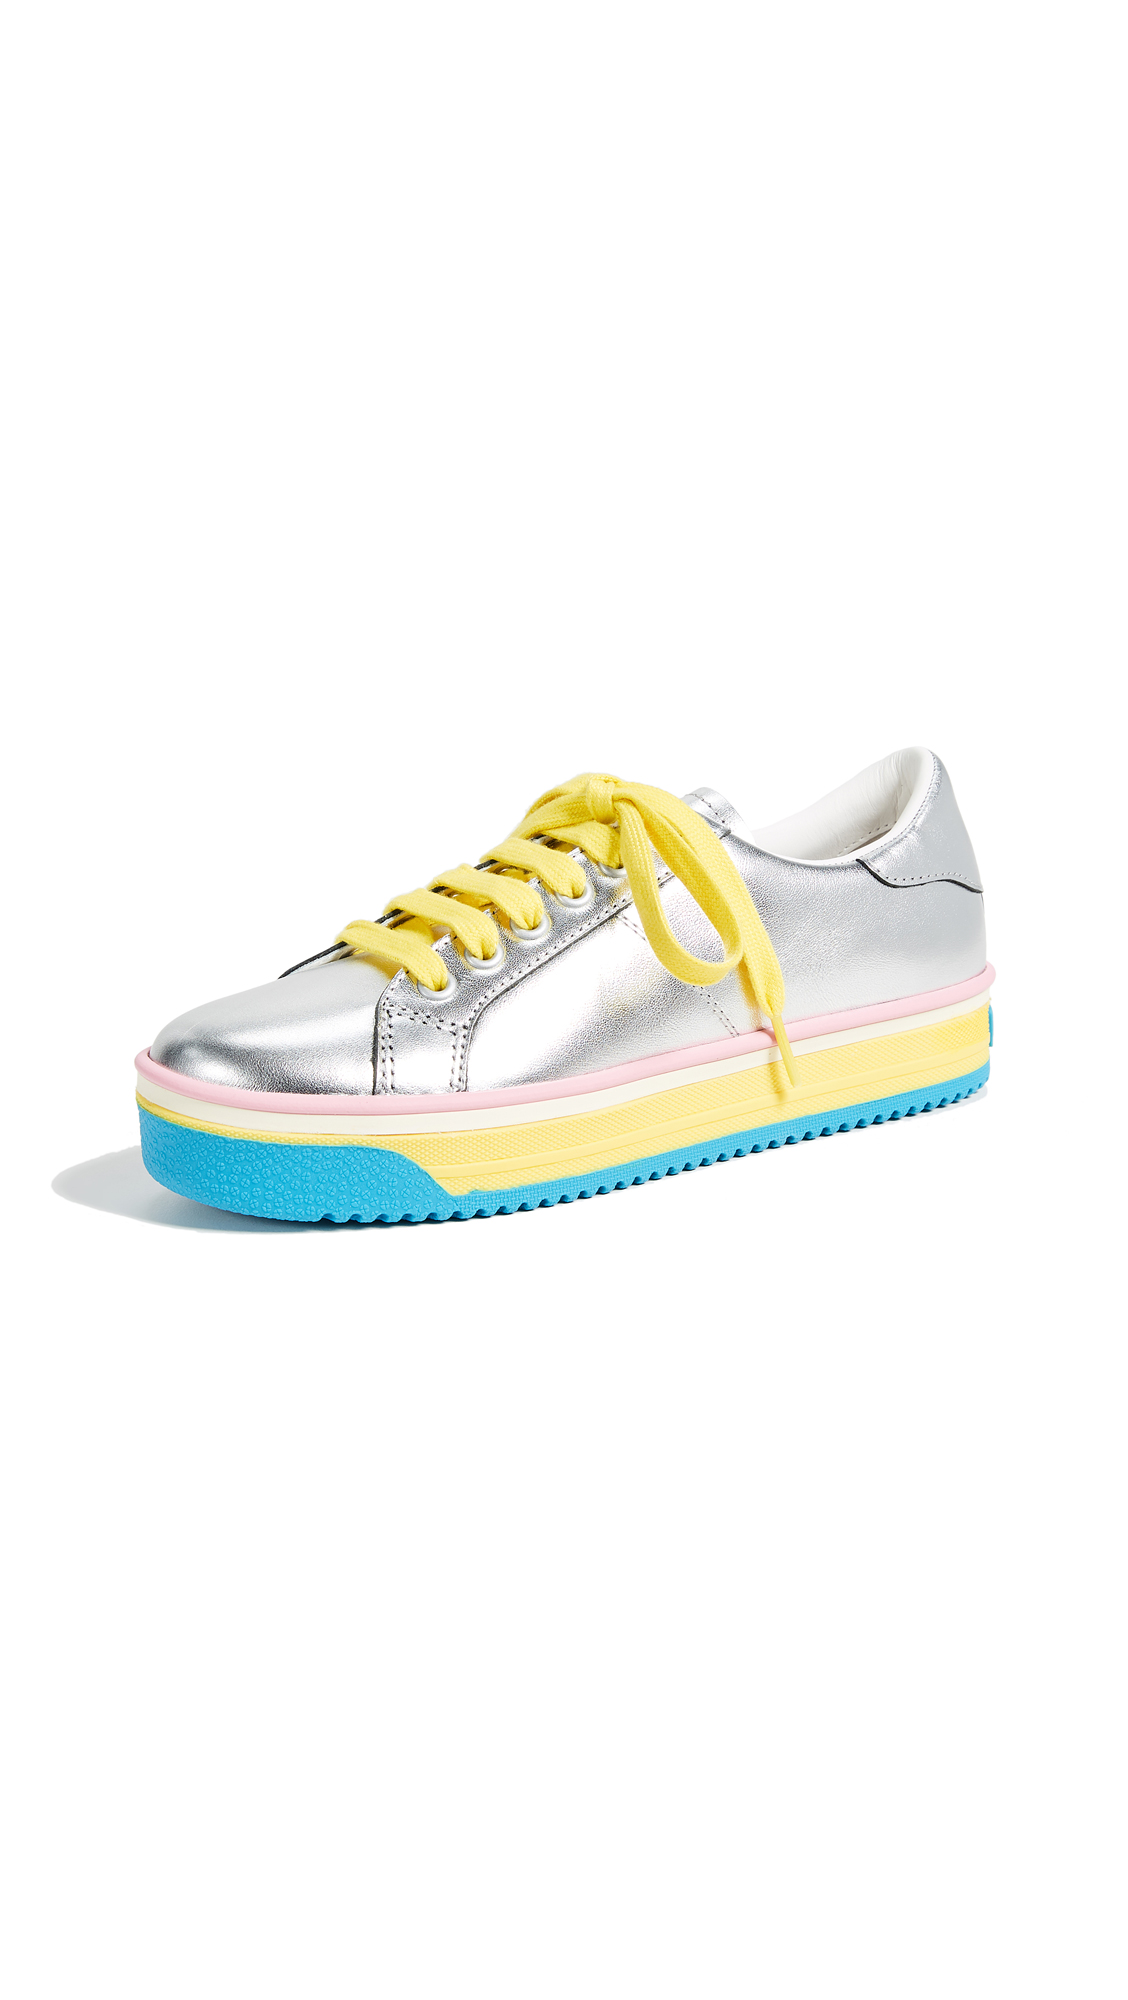 Marc Jacobs Empire Multi Color Sole Sneakers - Silver/Yellow Multi